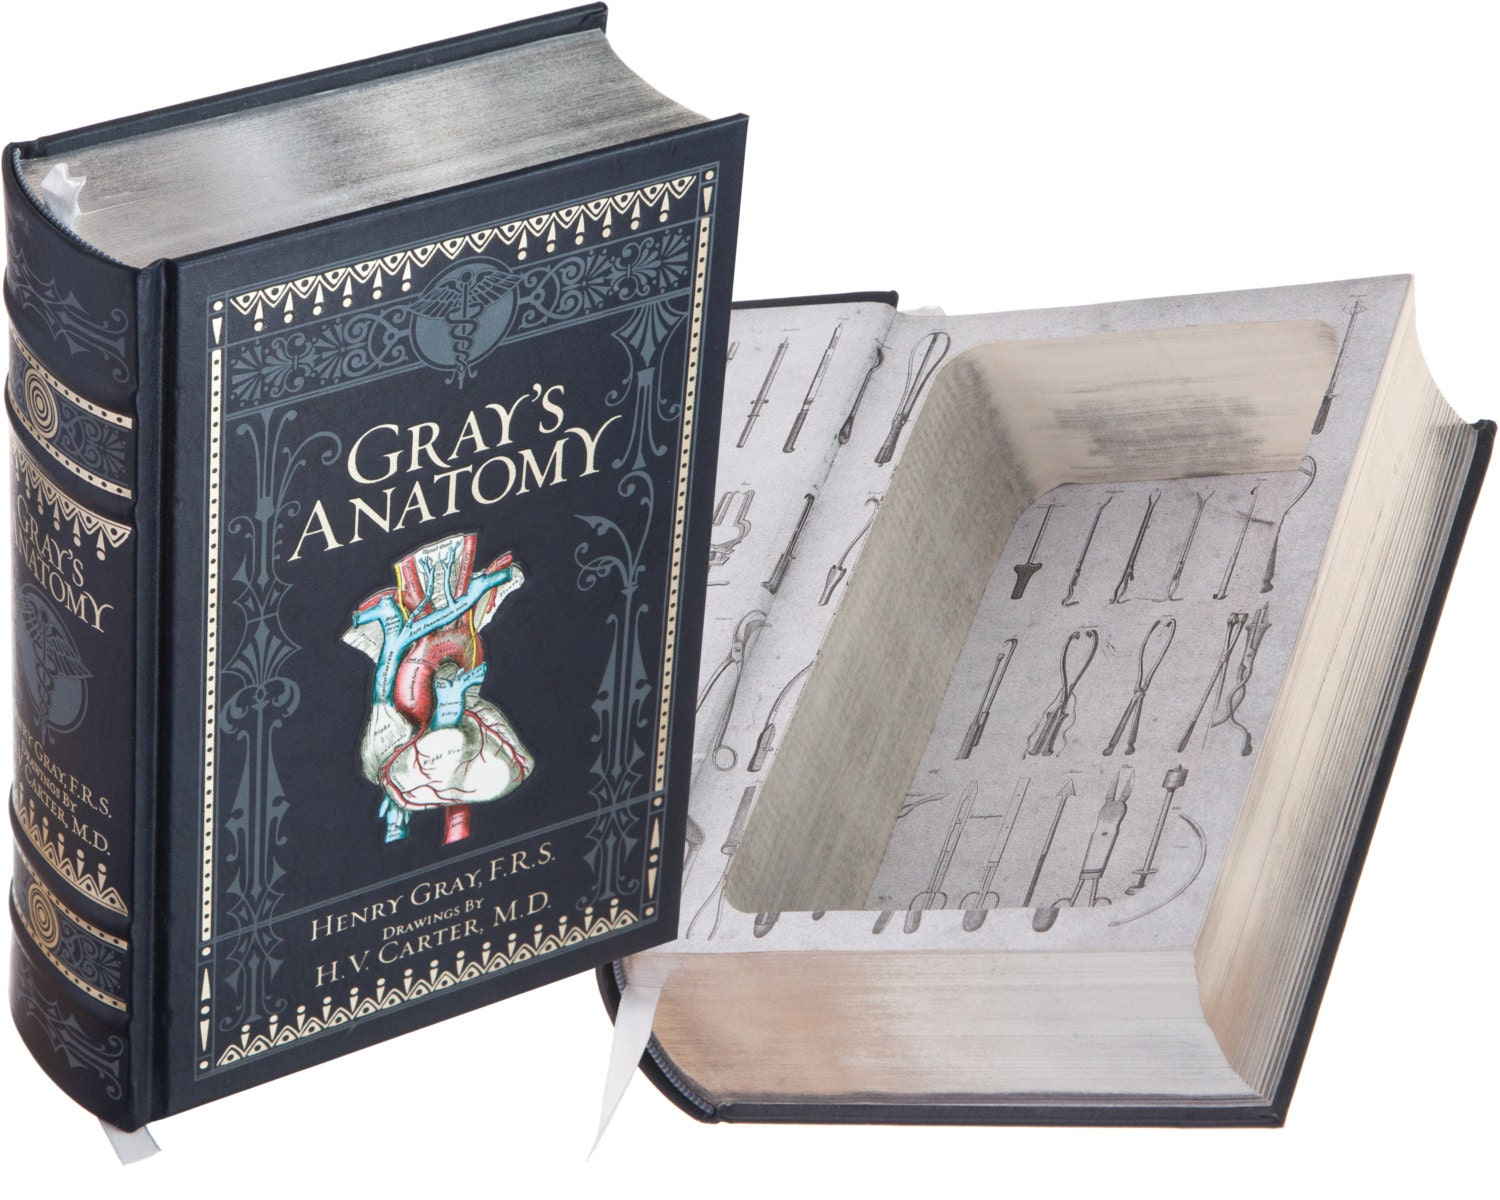 Large Hollow Book Safe Grays Anatomy By Henry Gray